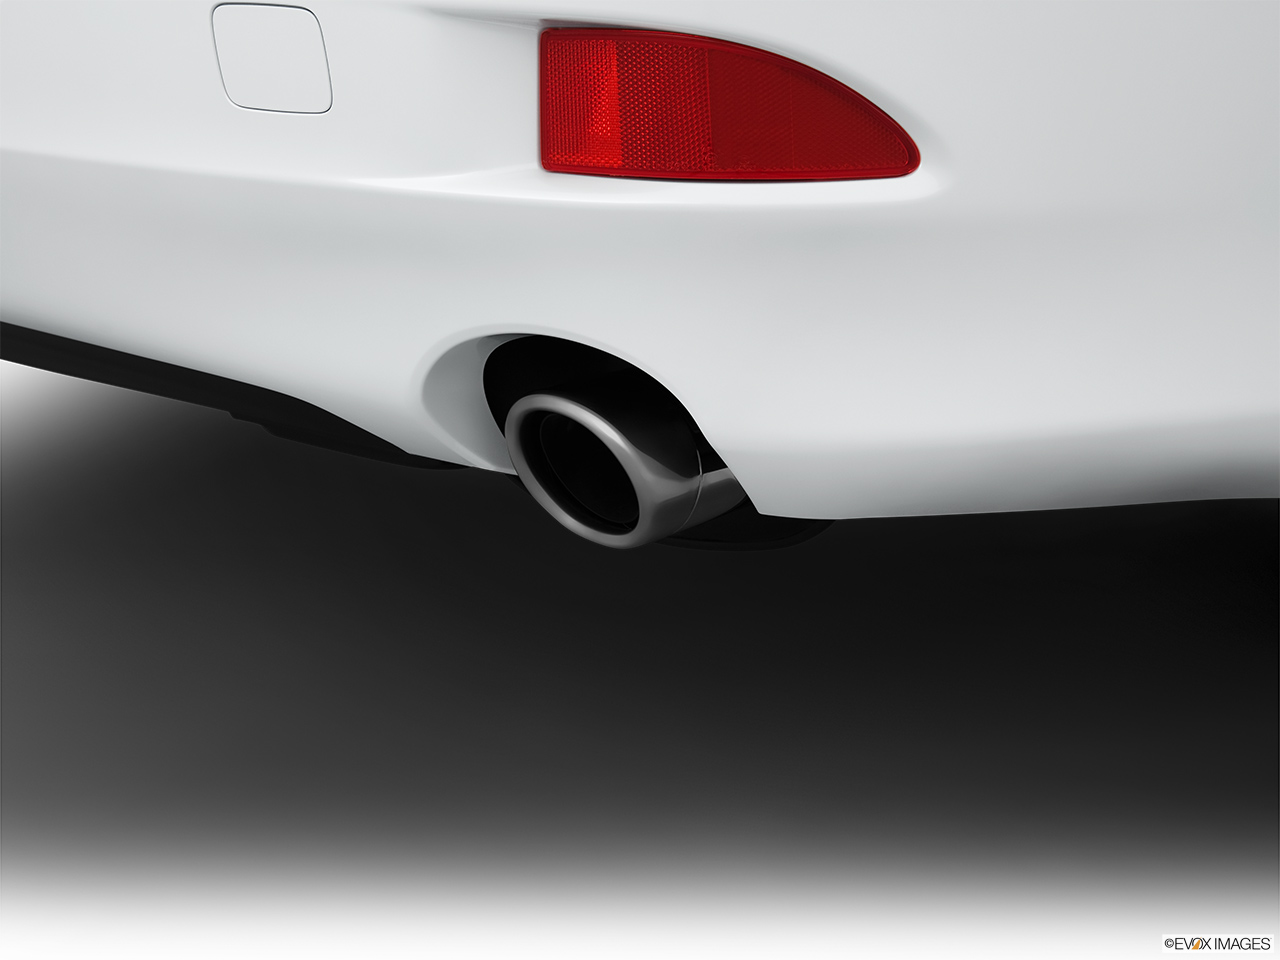 2013 Lexus IS 250 IS 250 RWD Chrome tip exhaust pipe.